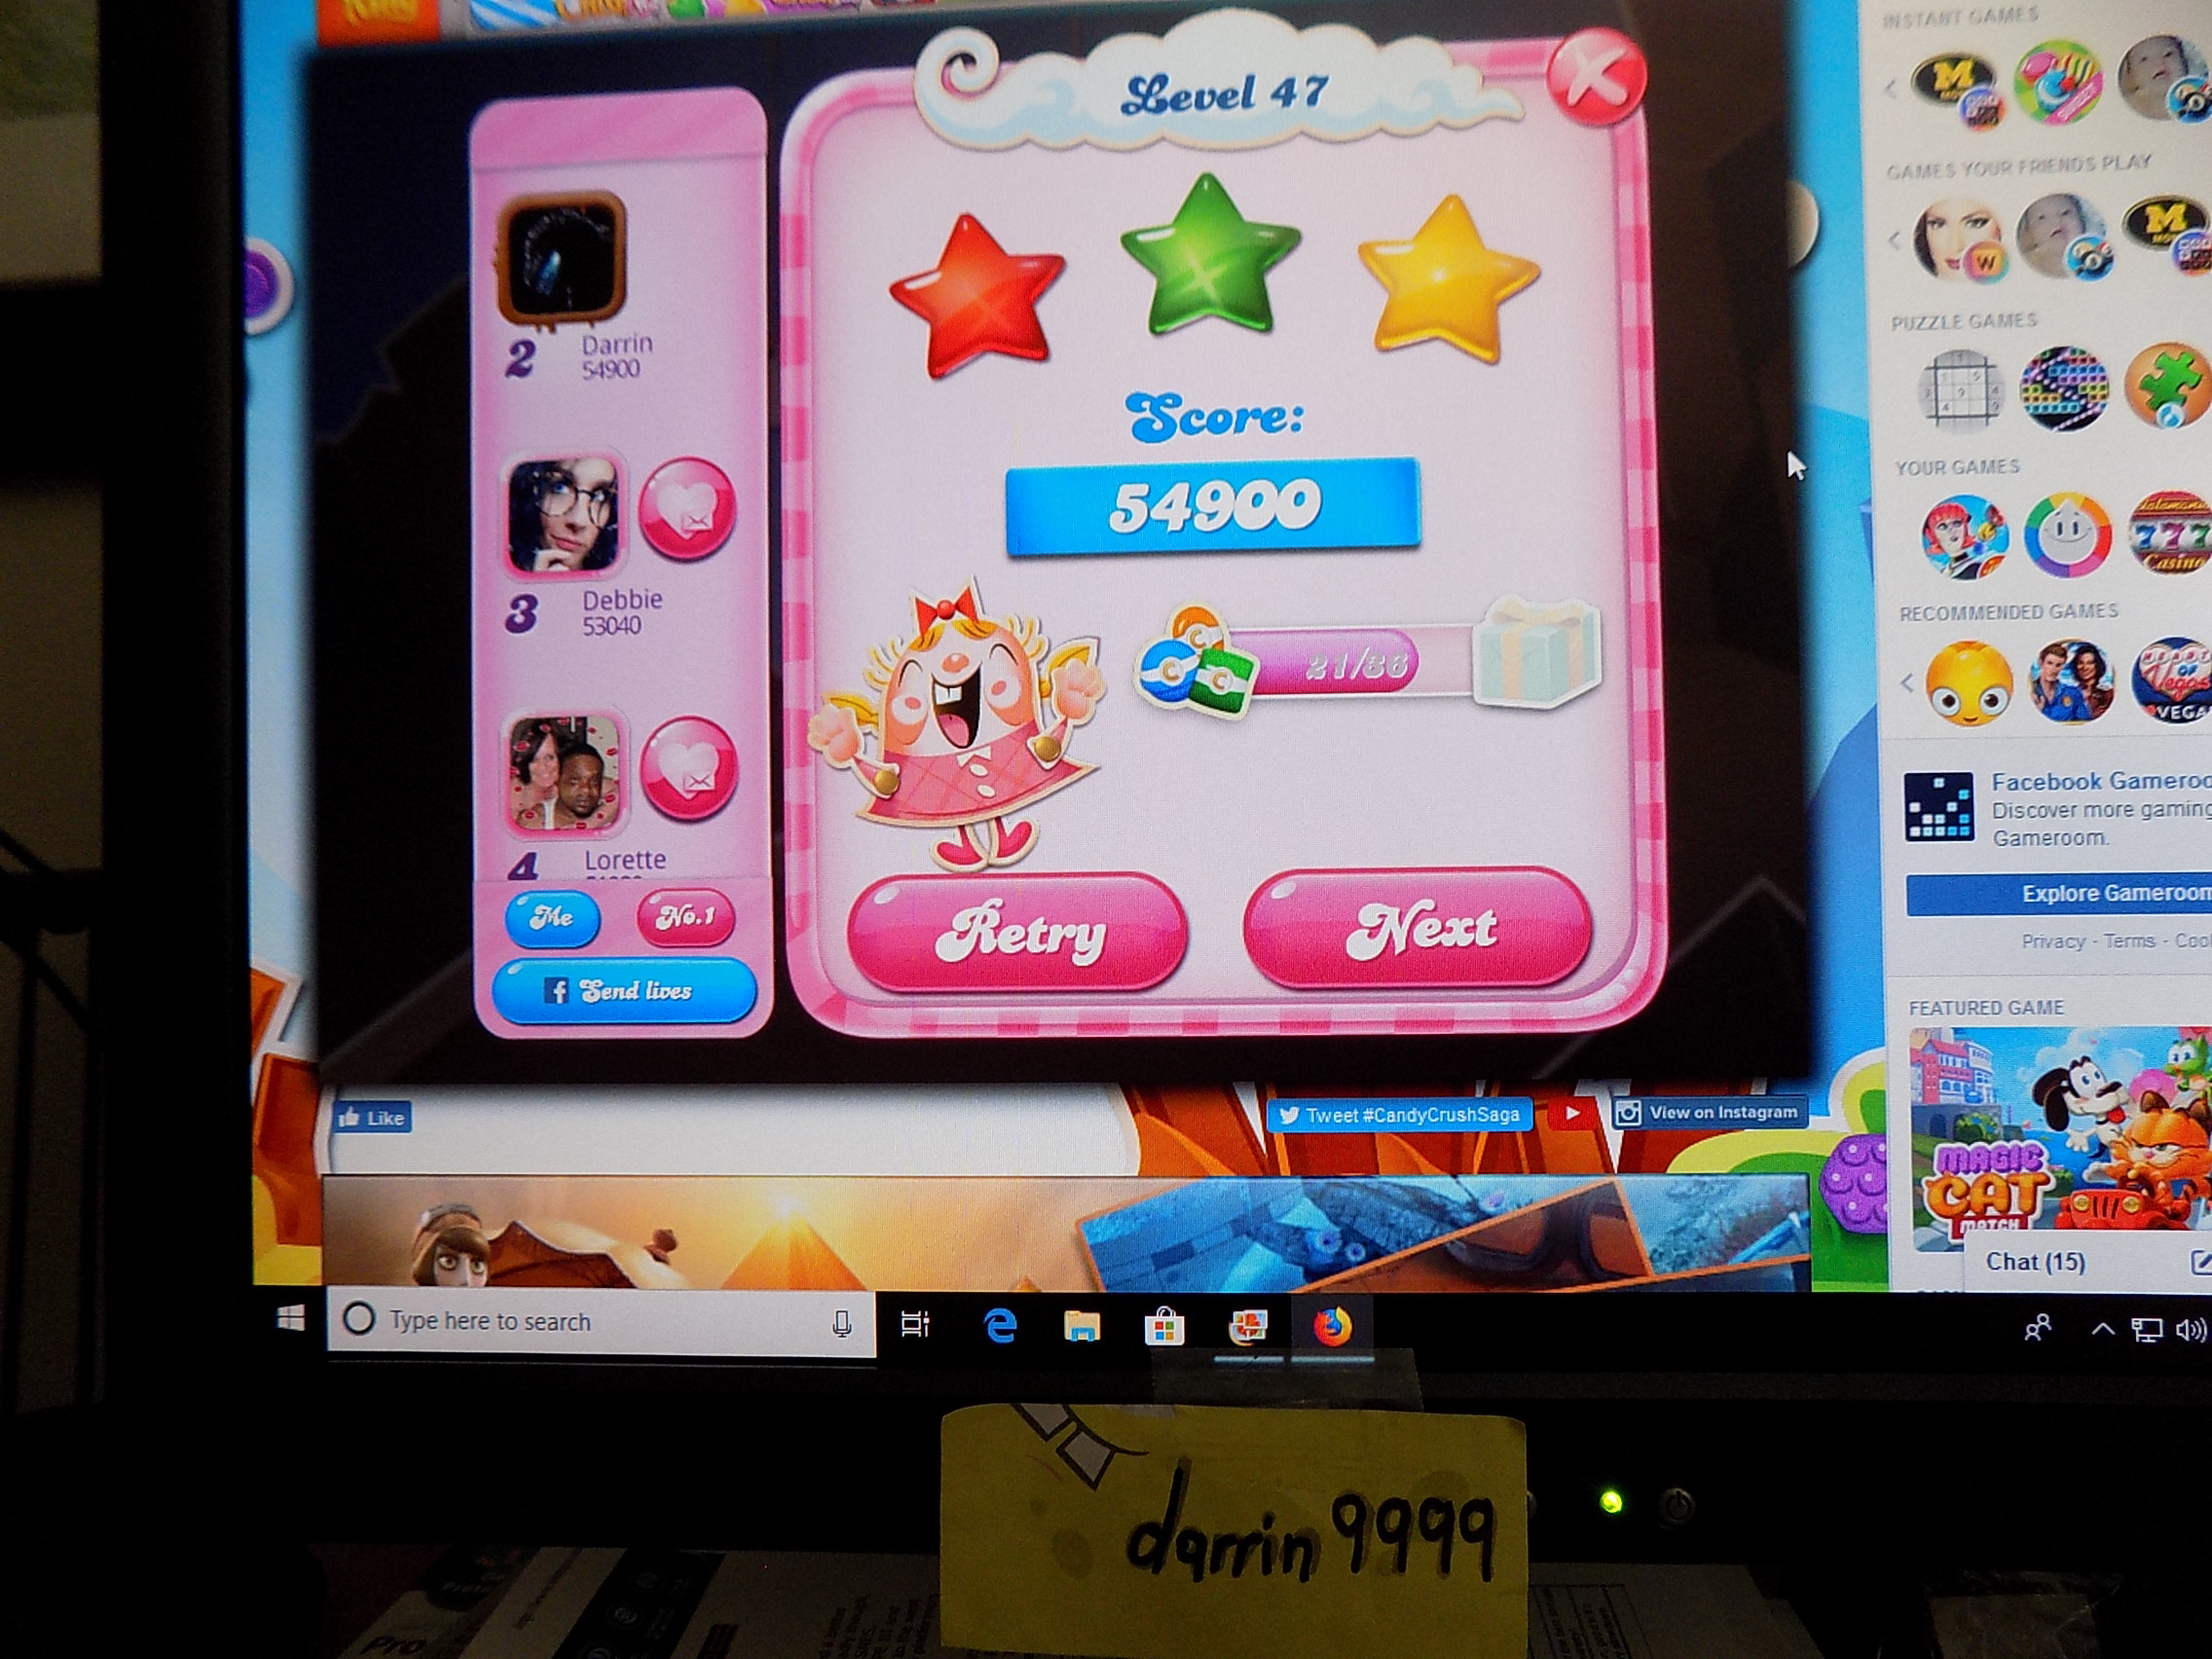 darrin9999: Candy Crush Saga: Level 047 (Web) 54,900 points on 2019-06-05 16:00:46